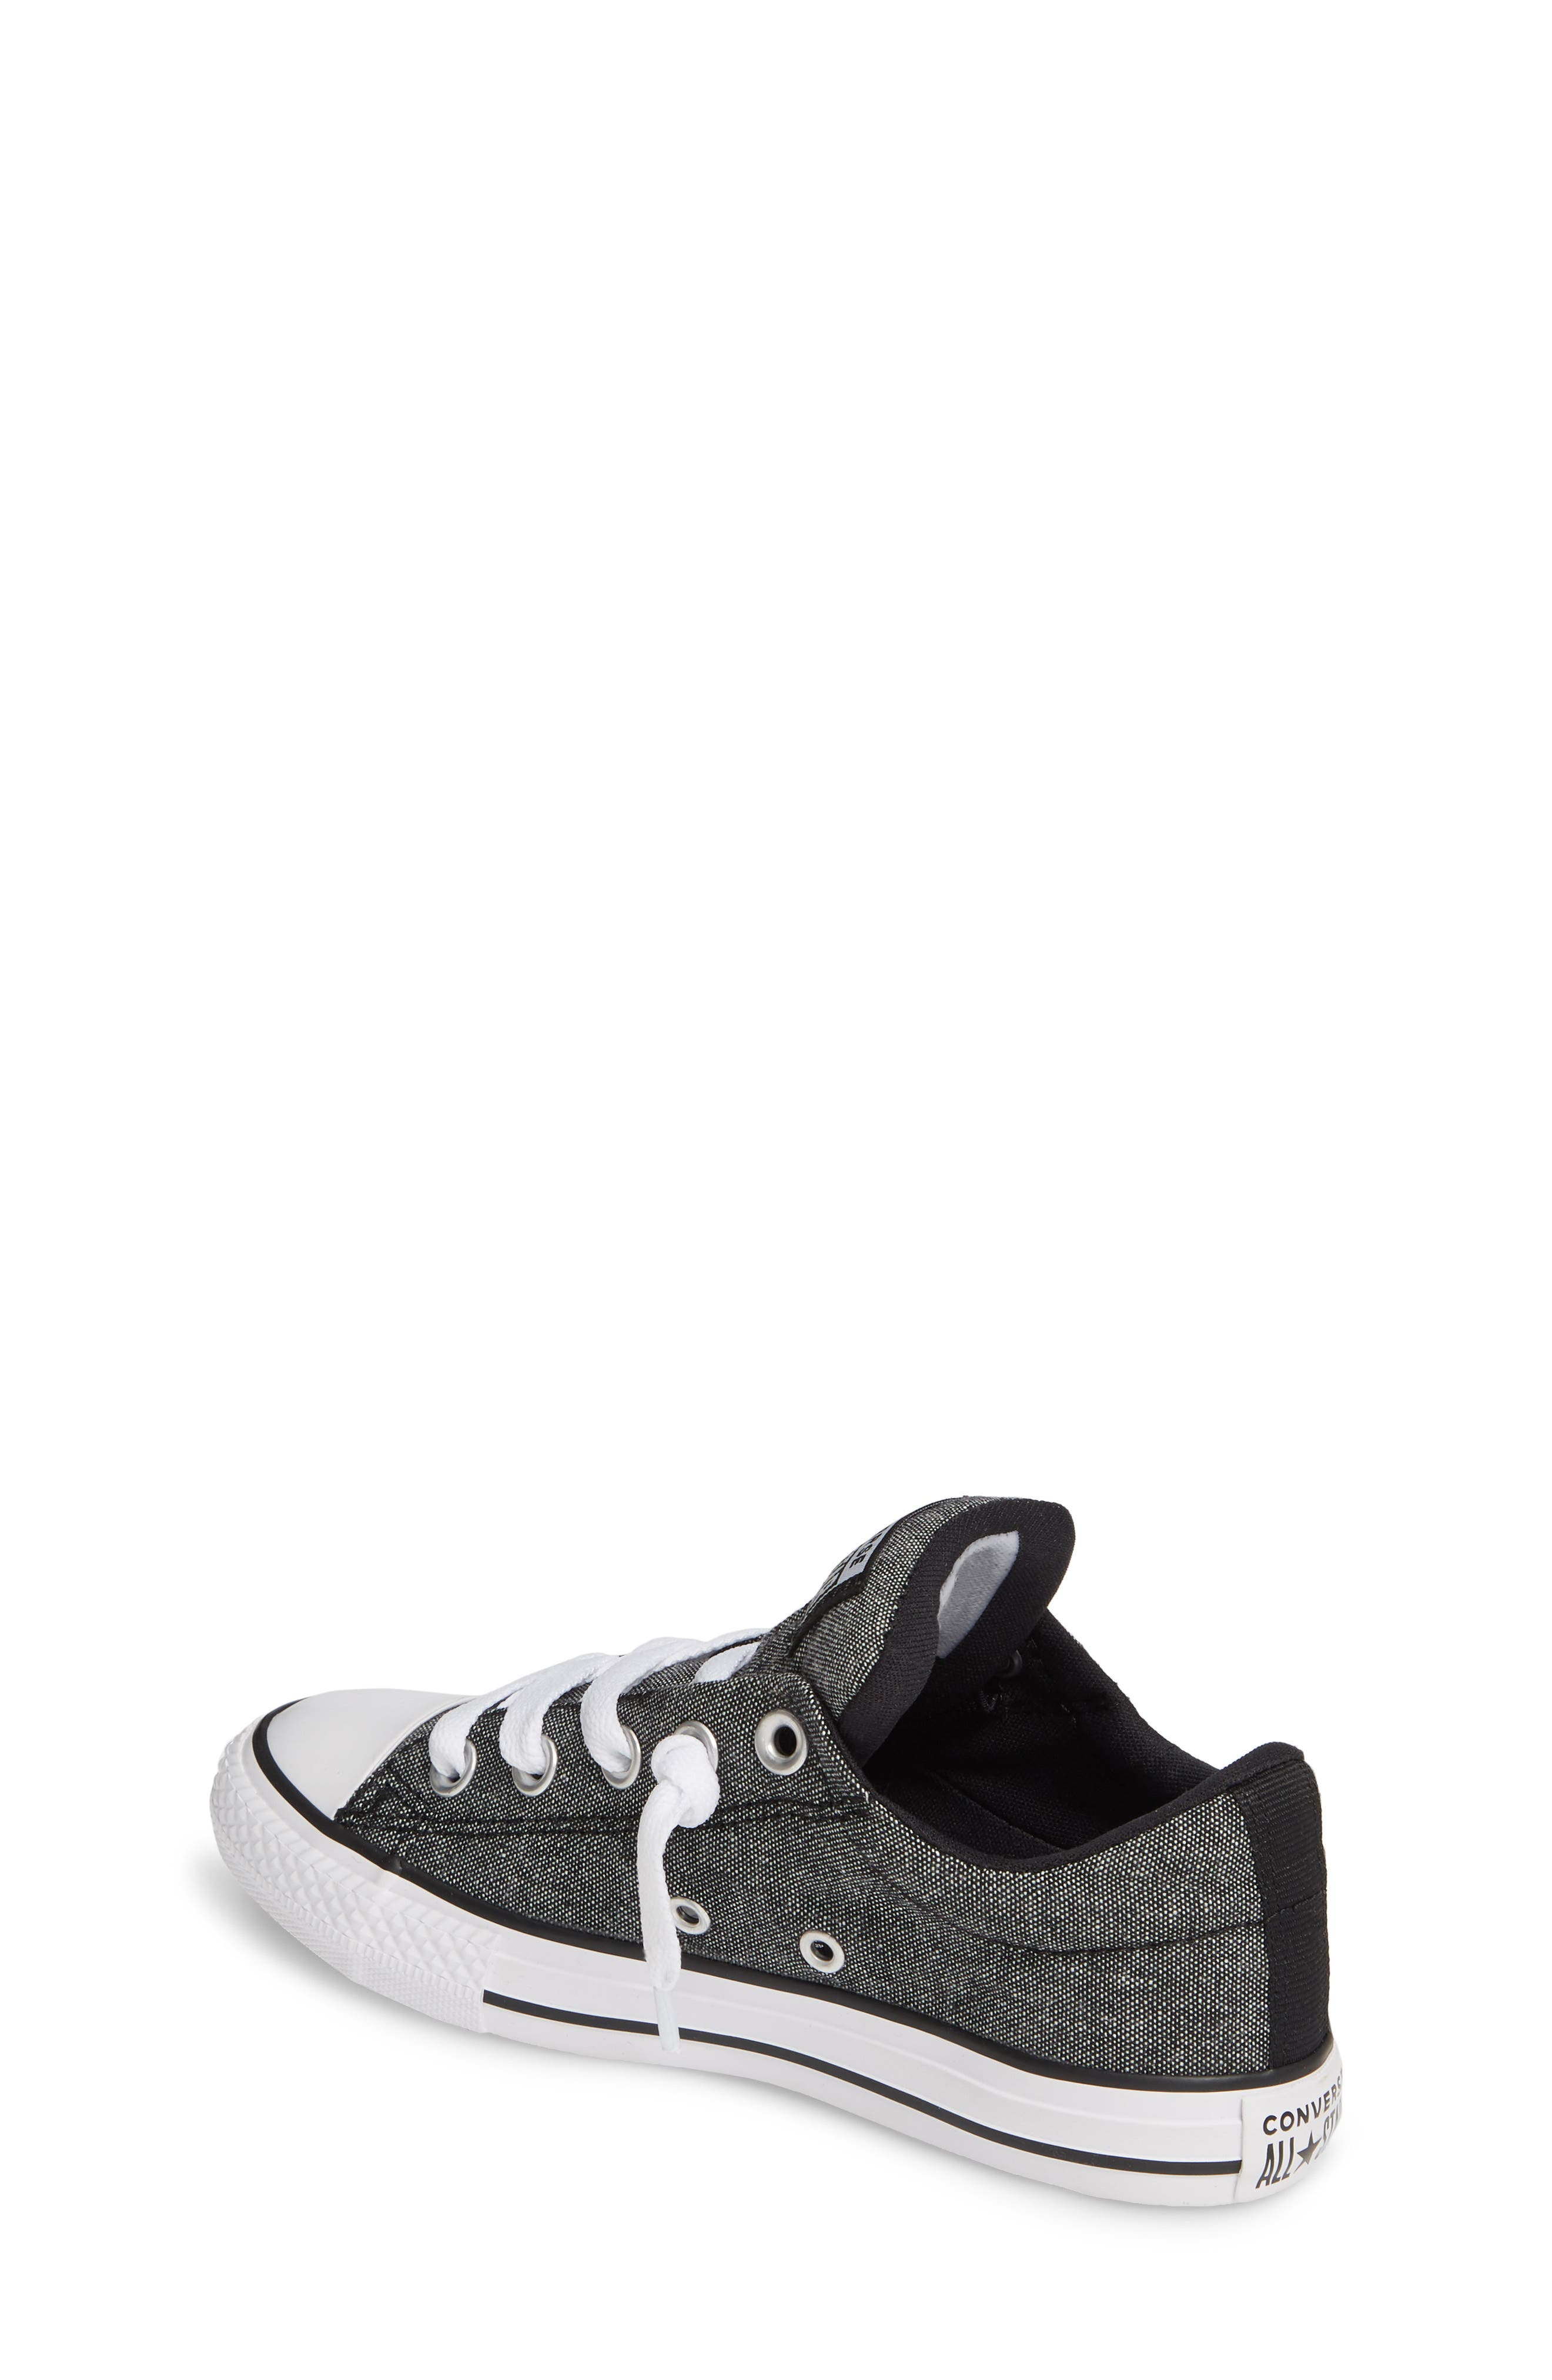 ,                             Chuck Taylor<sup>®</sup> All Star<sup>®</sup> Street Sneaker,                             Alternate thumbnail 2, color,                             BLACK/ BLACK/ WHITE